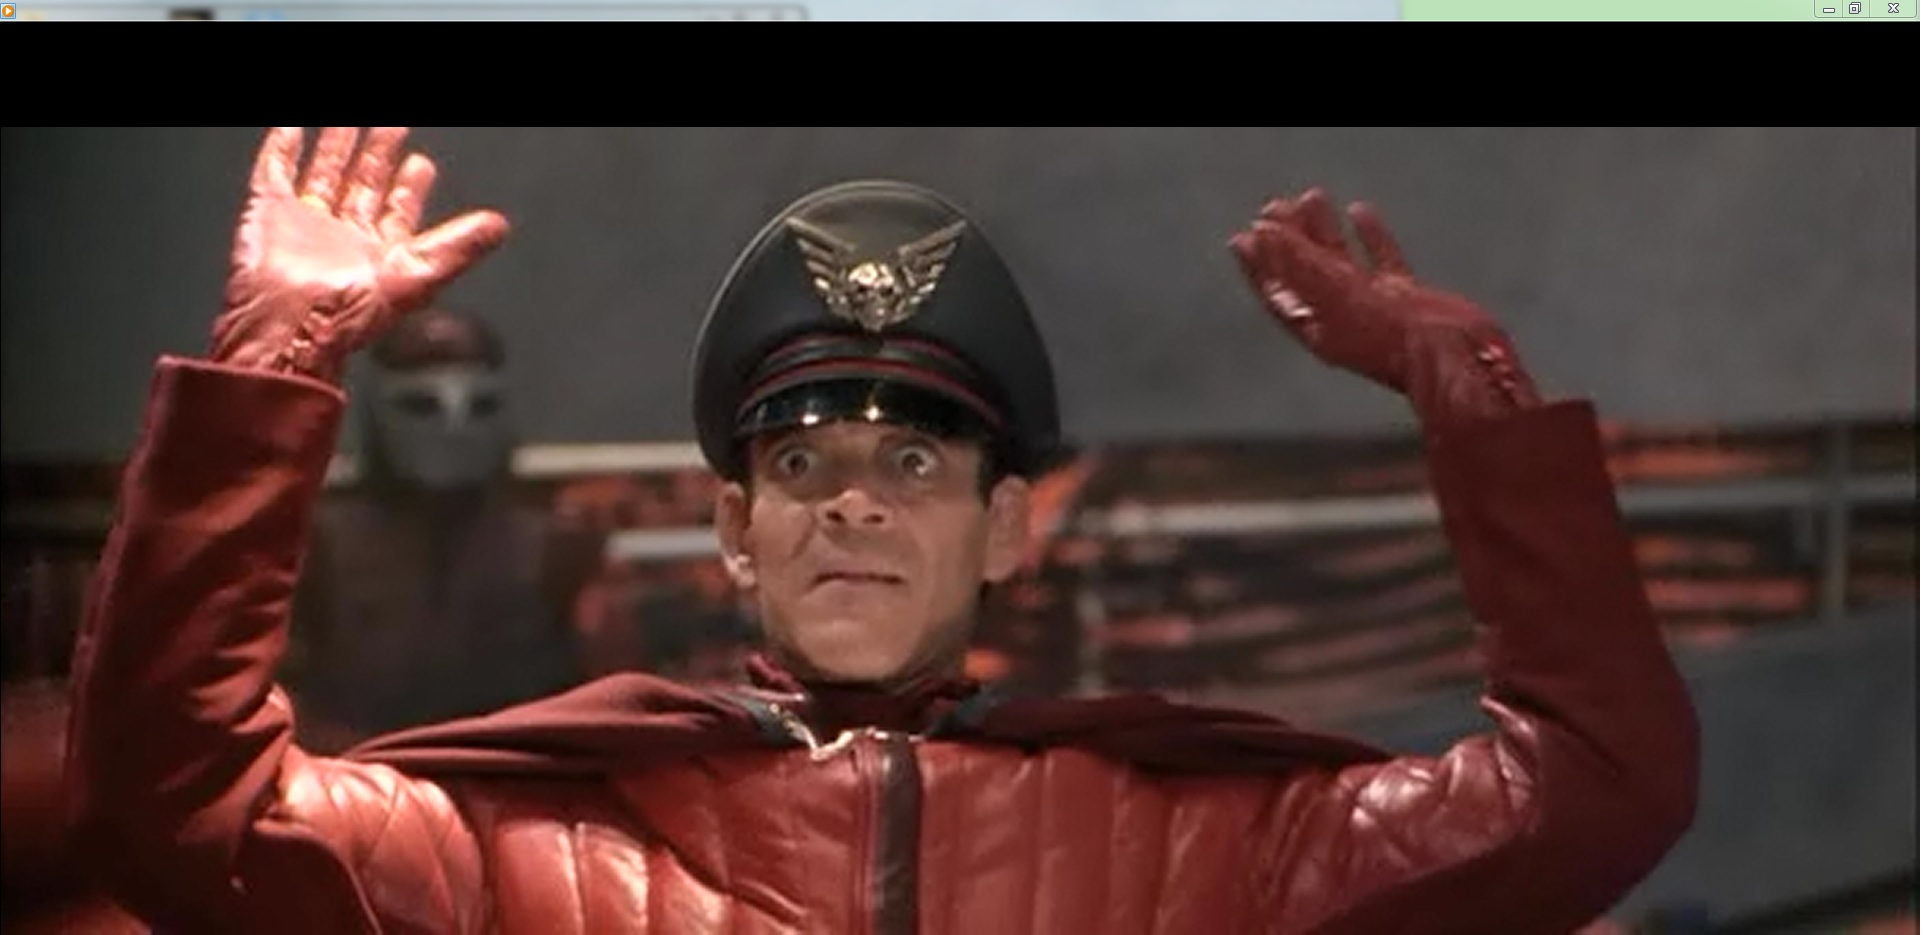 M Bison Street Fighter Movie 10 Movies With The Worst